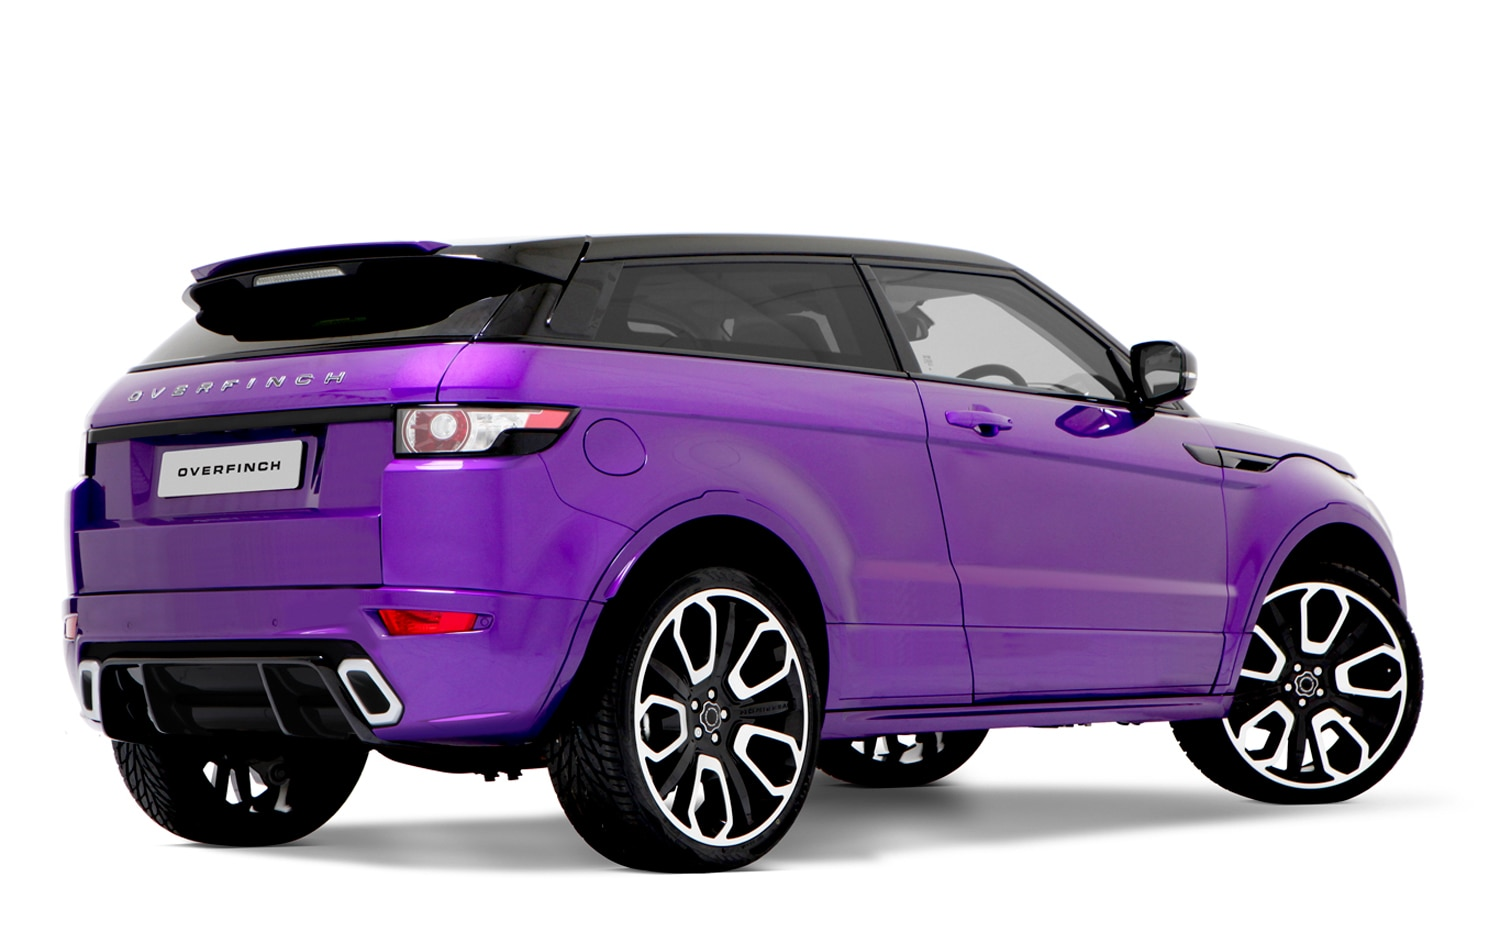 Technicolor Power Overfinch Upgrades Range Rover Sport